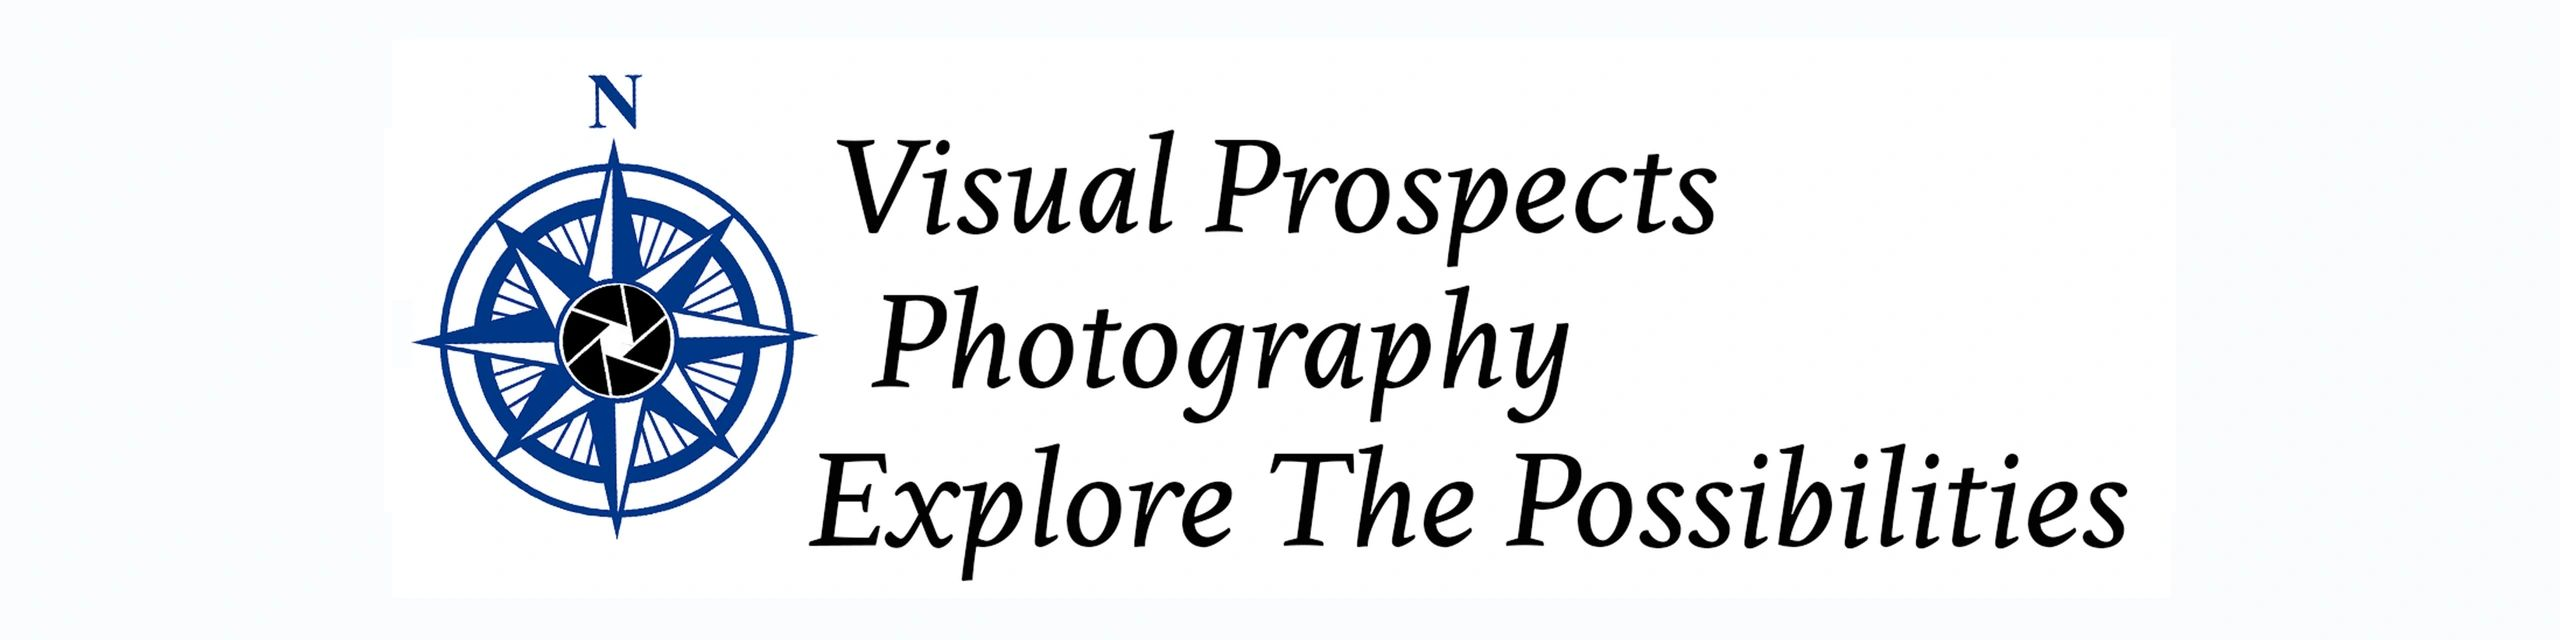 Visual Prospects Photography